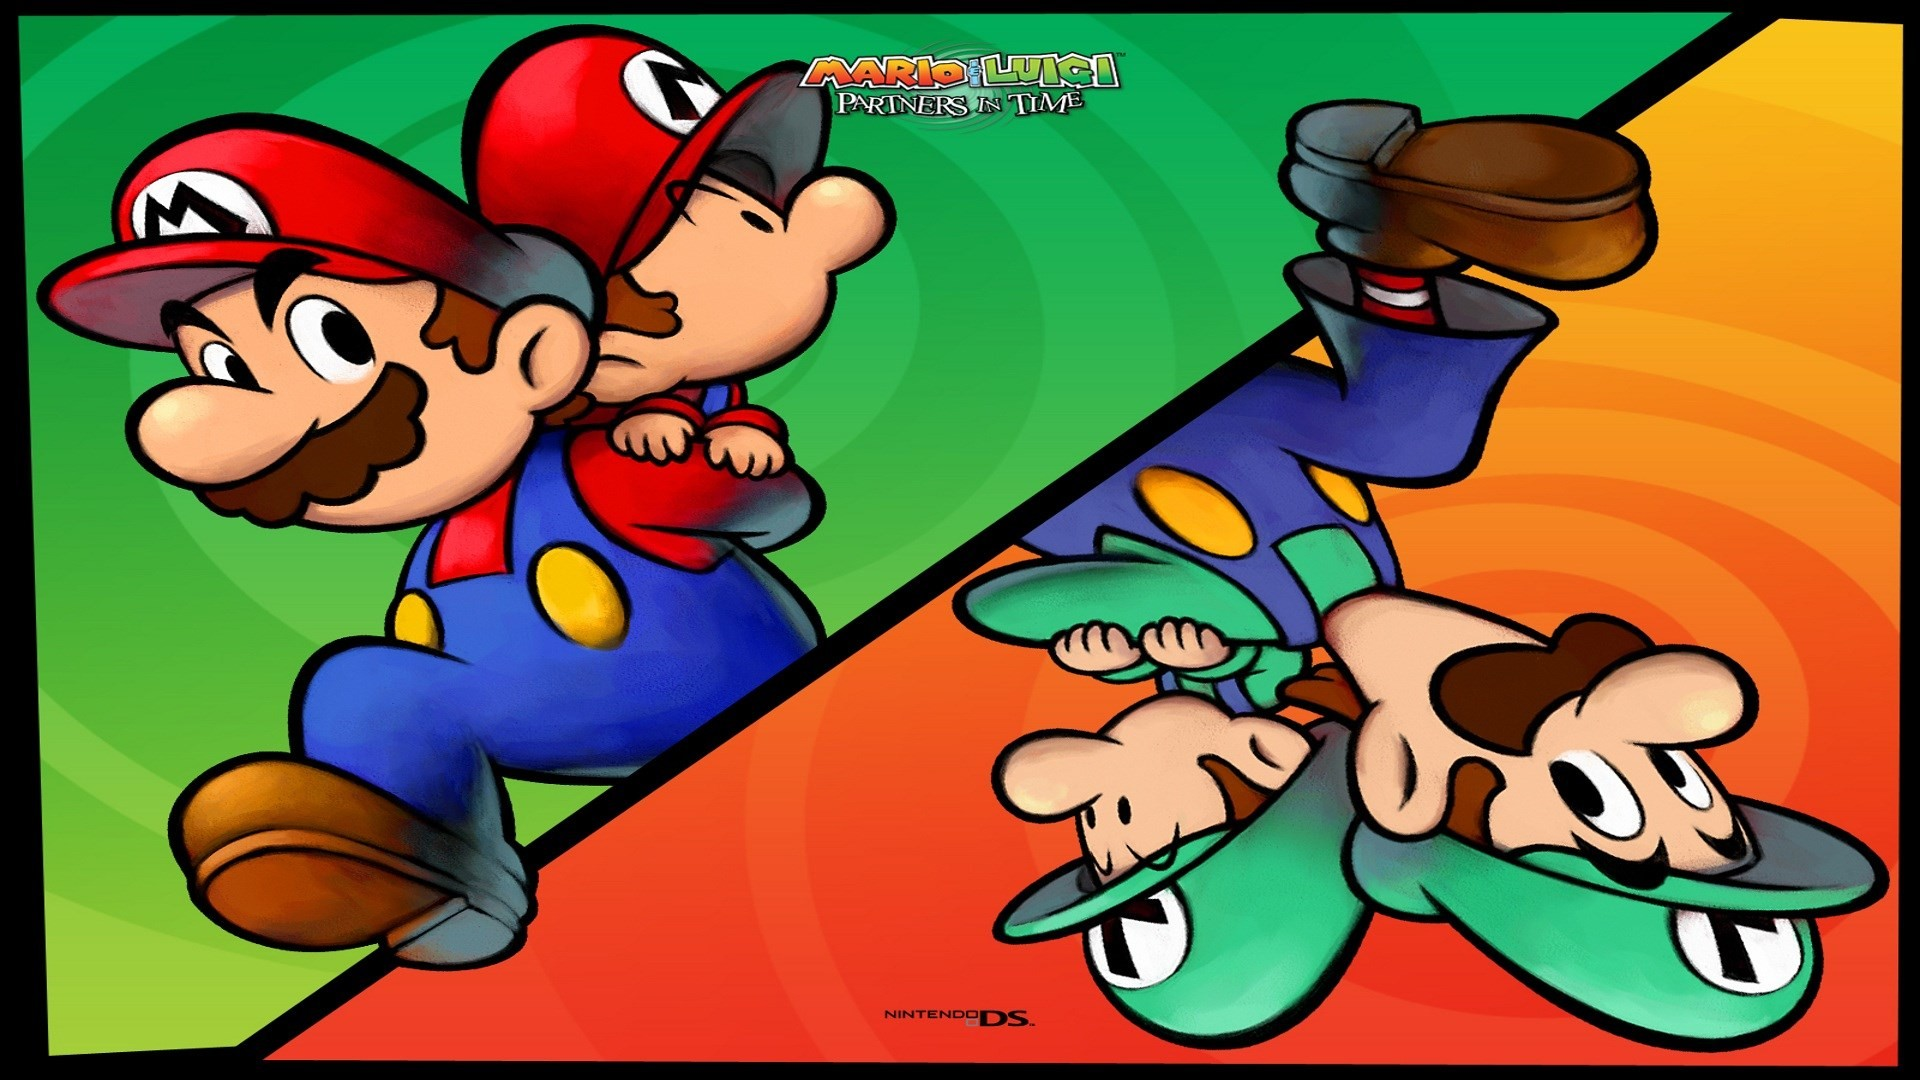 mario and luigi partners in time wallpaper free – mario and luigi partners  in time category